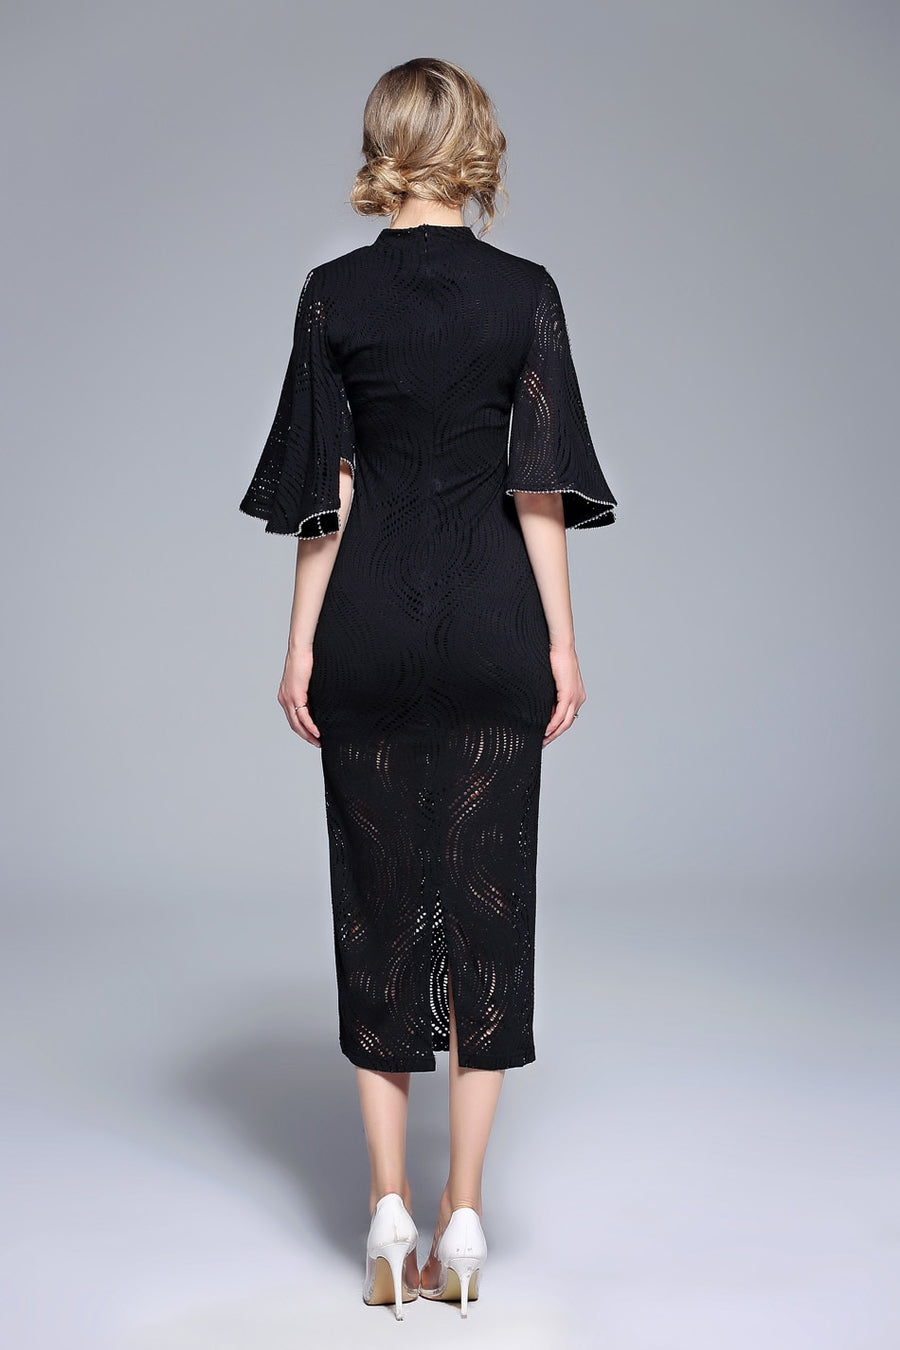 Black Ruffle Sleeve Lace Hollow Out Slim Bodycon Dress